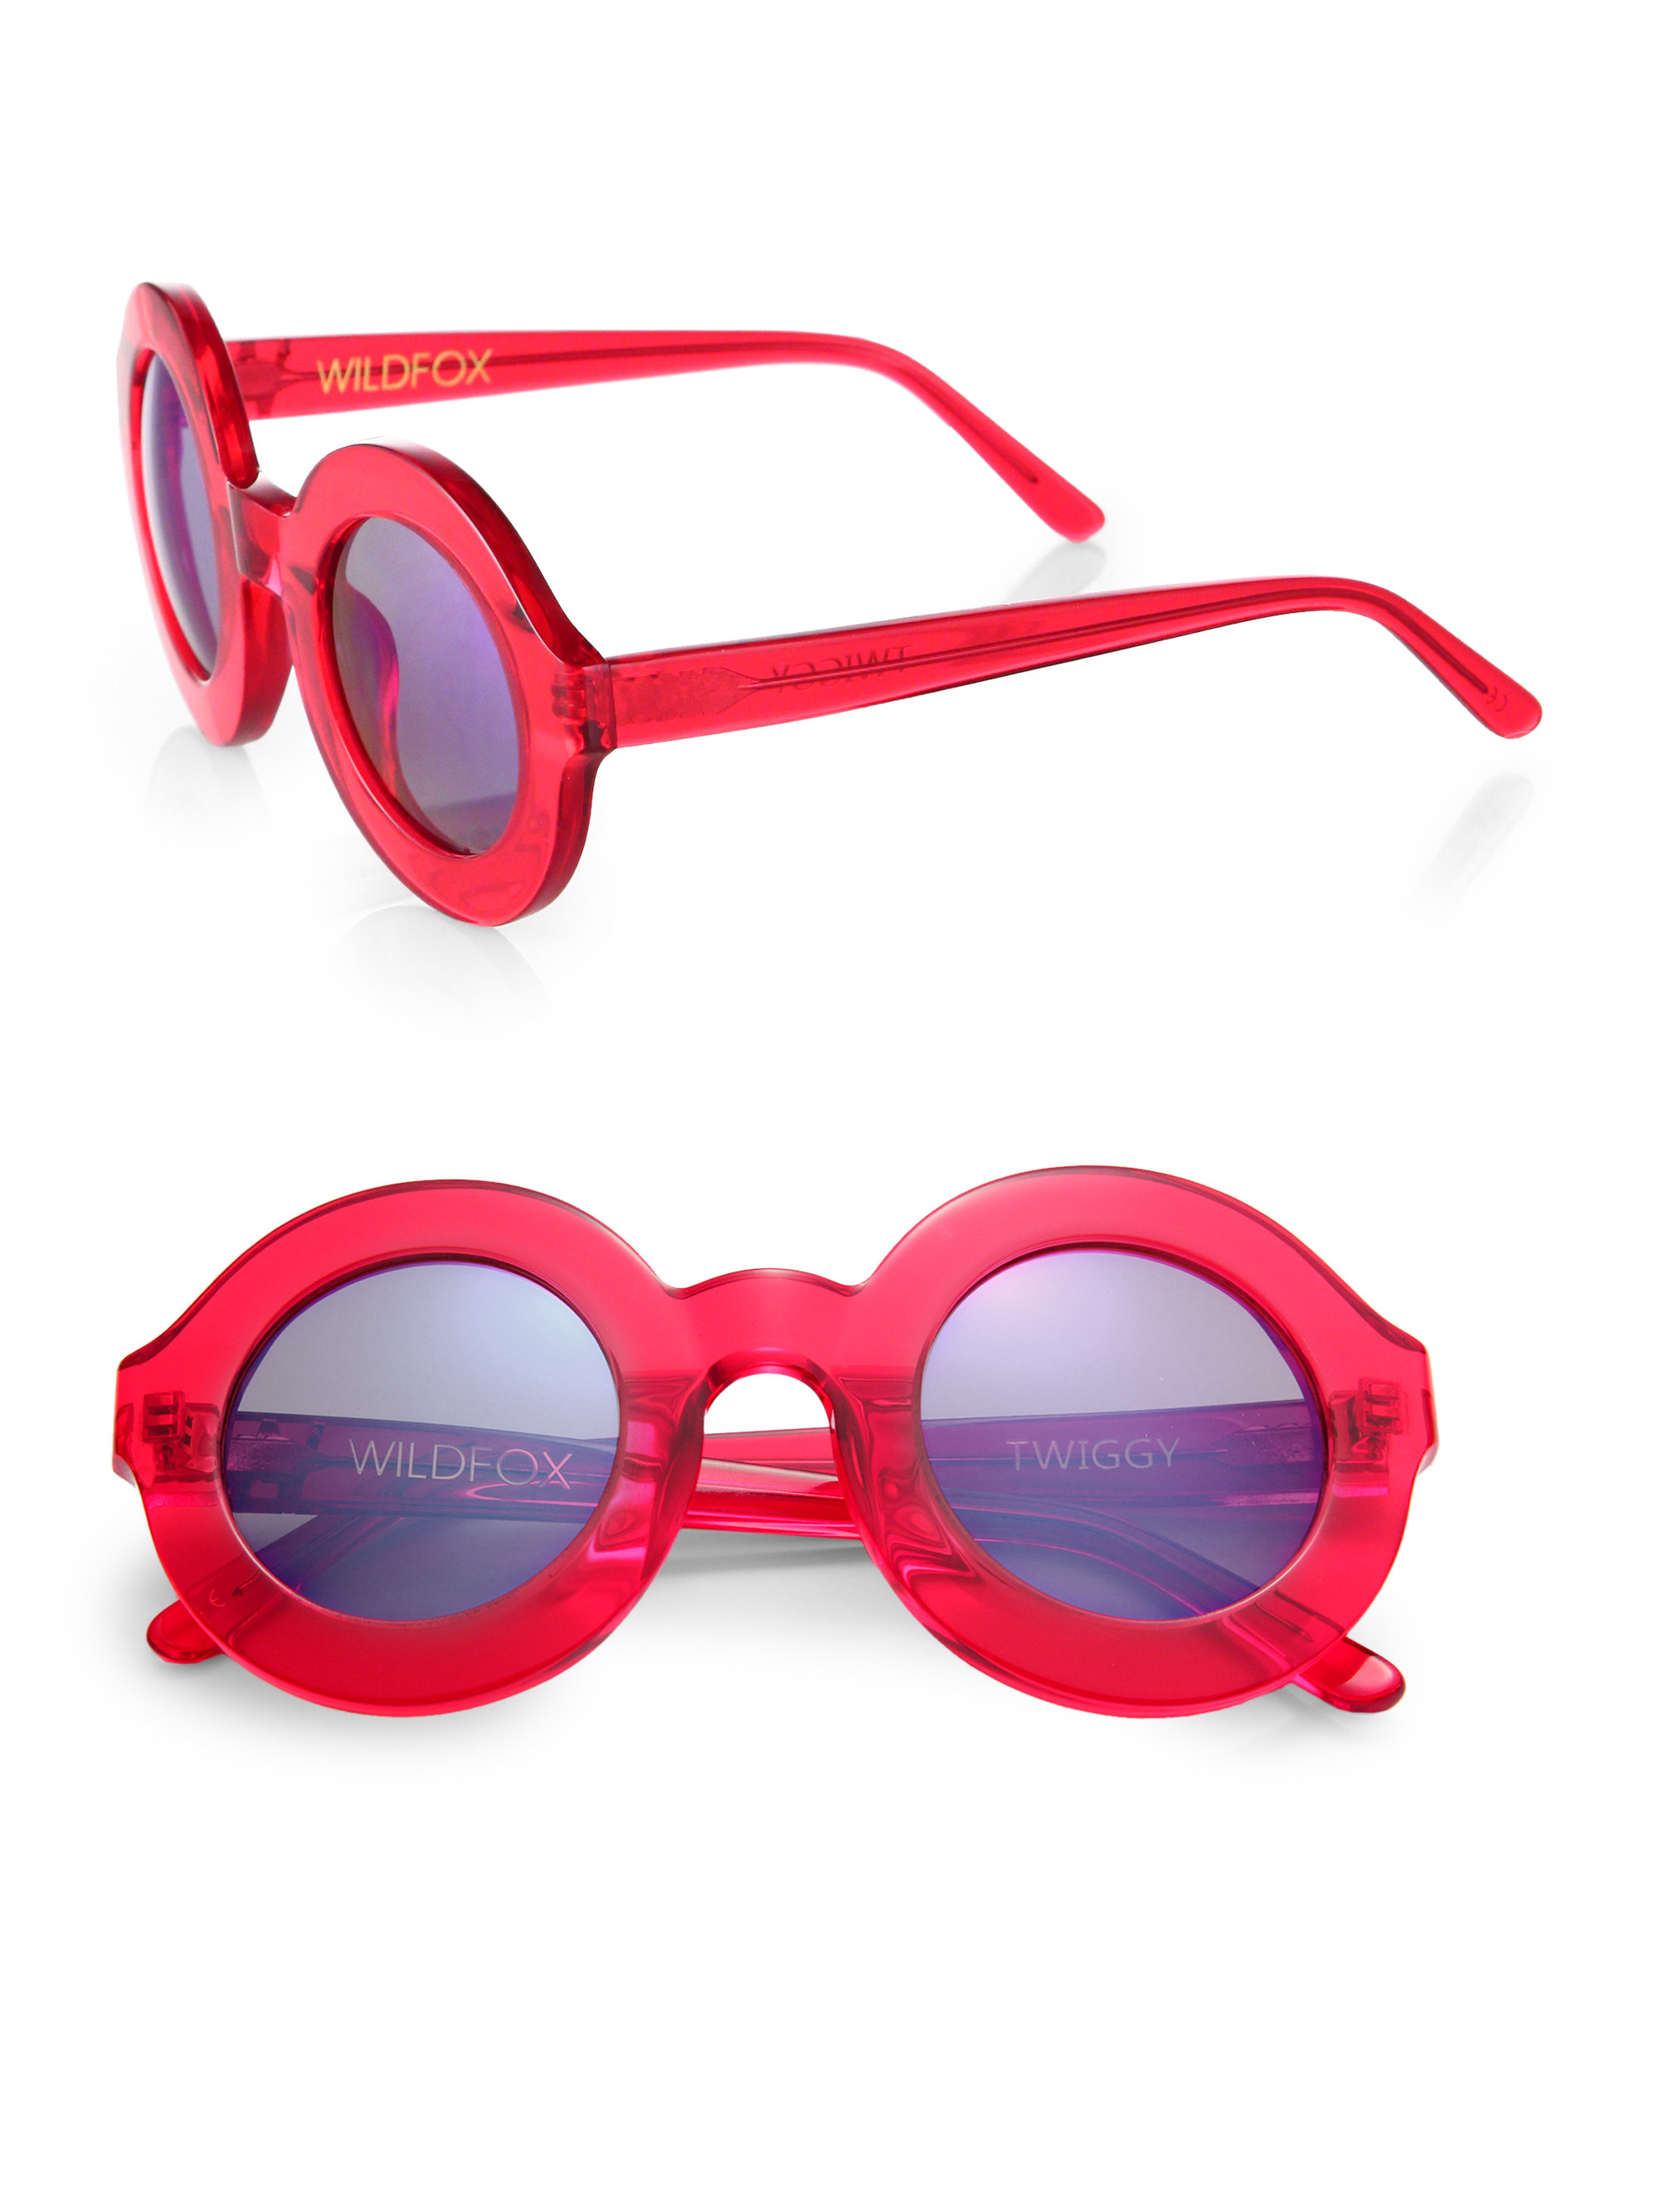 Sunglasses Wildfox Round Plastic Delux Red Twiggy fygb76